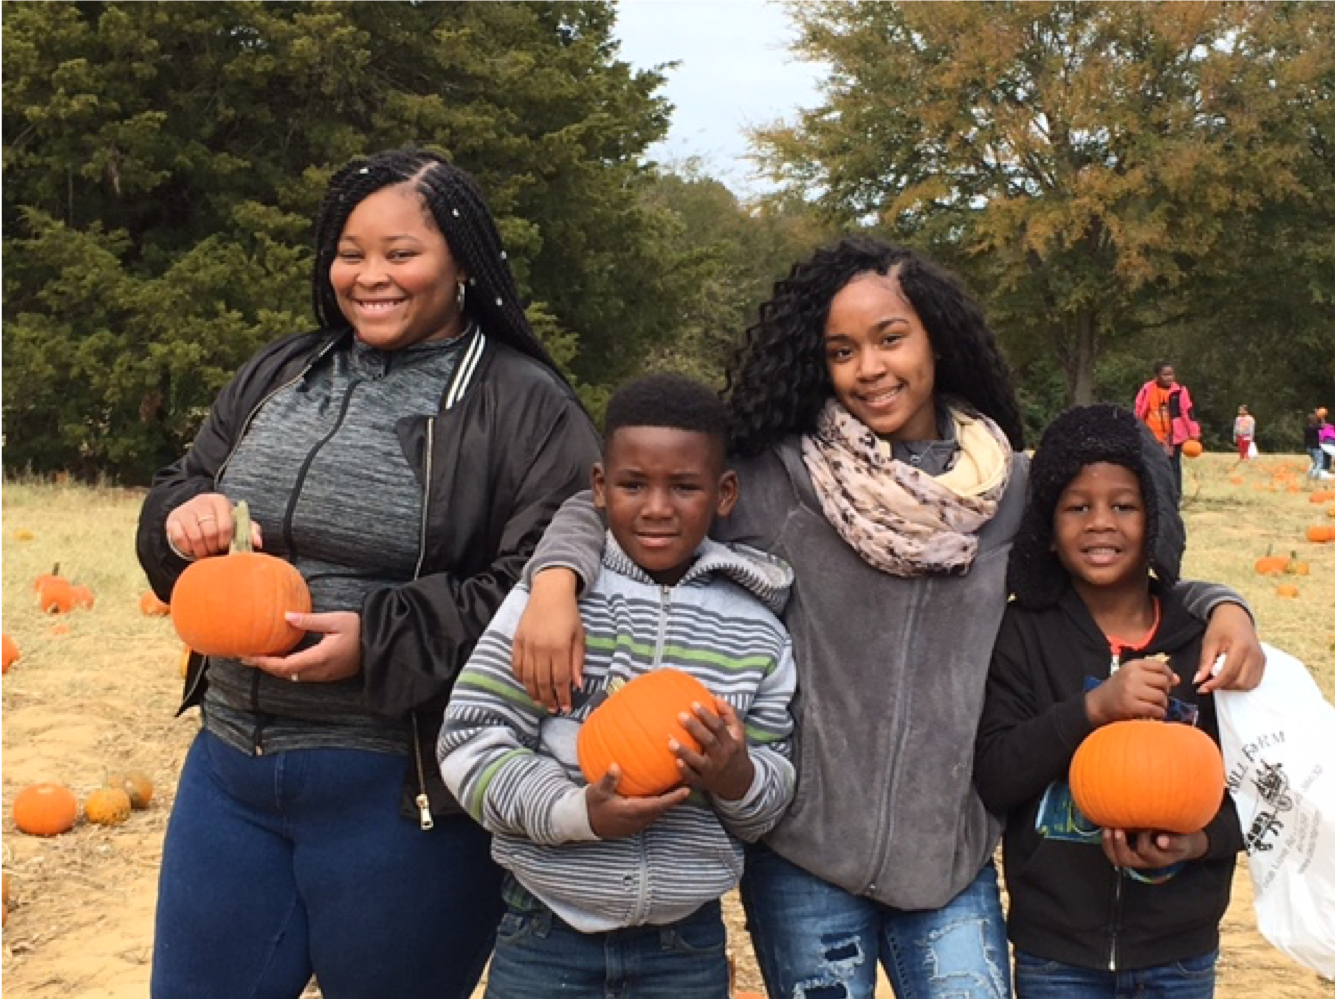 North Panola teacher academy student pick pumpkins with Como elementary